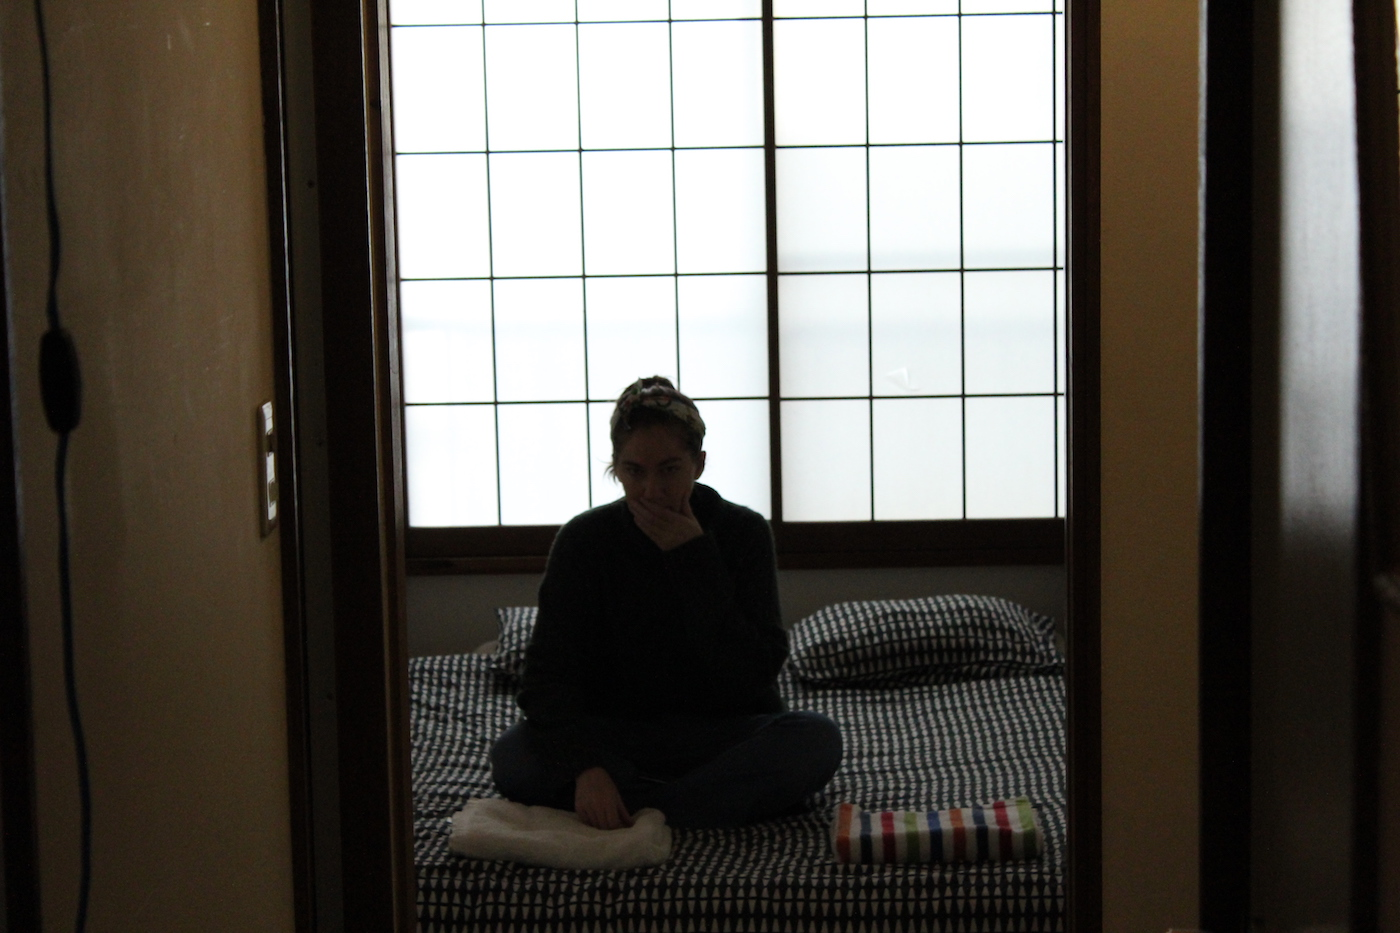 We stayed in a traditional Japanese apartment, complete with tatami mats and paper shades.  It was so nice to pretend like we lived there.